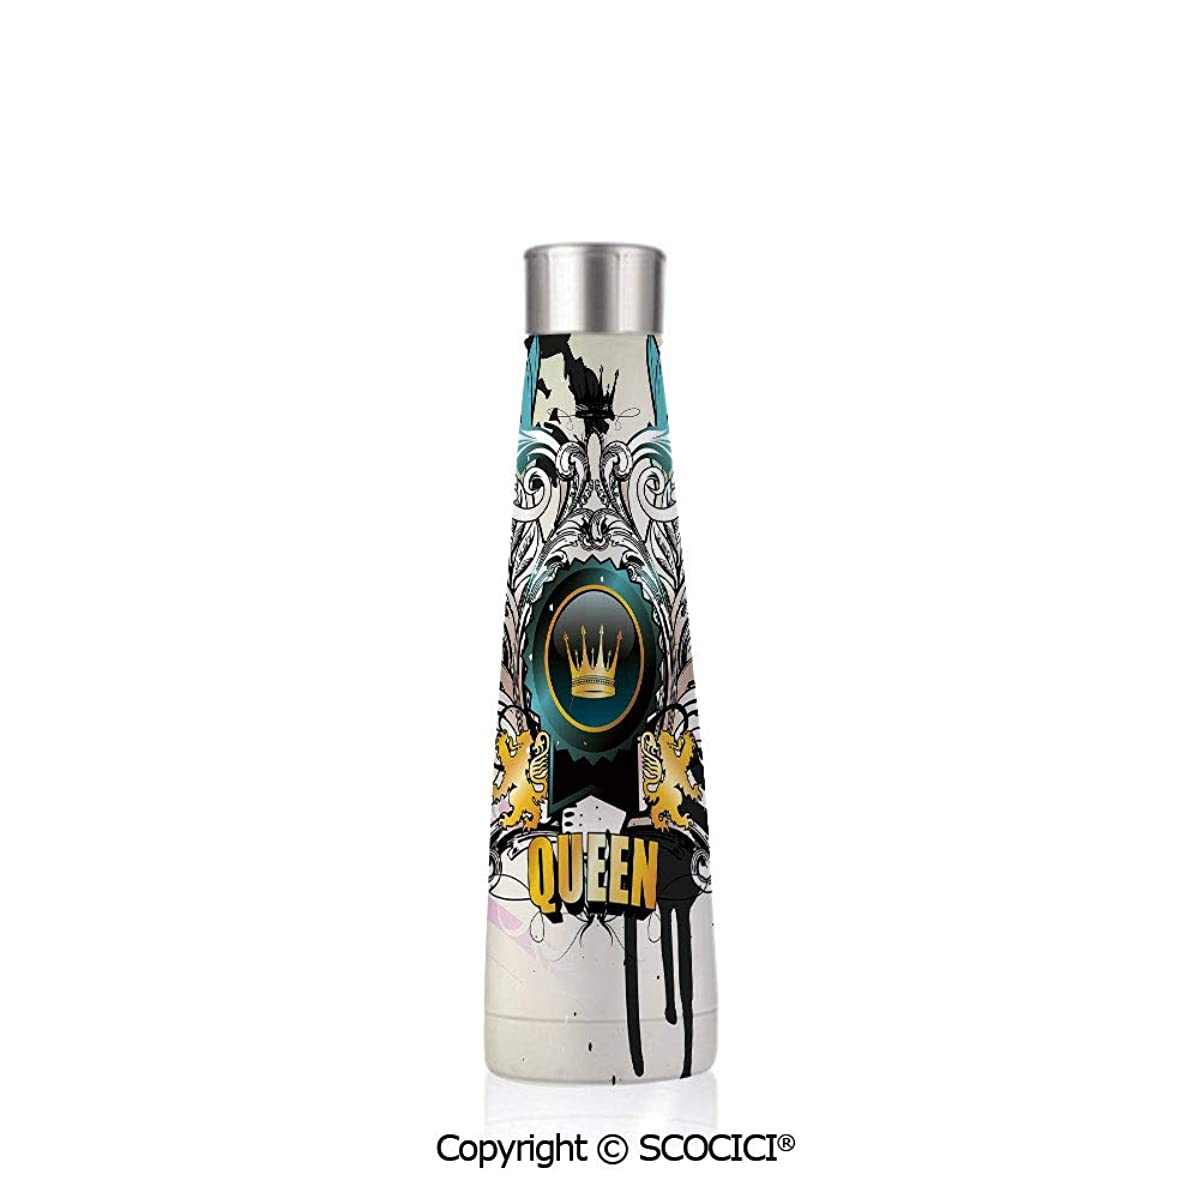 Conical Stainless Steel Vcuum Flask Queen Artistic Design Arms Shield With Crown Wings And Victorian Floral Elements Imperial,Multicolor